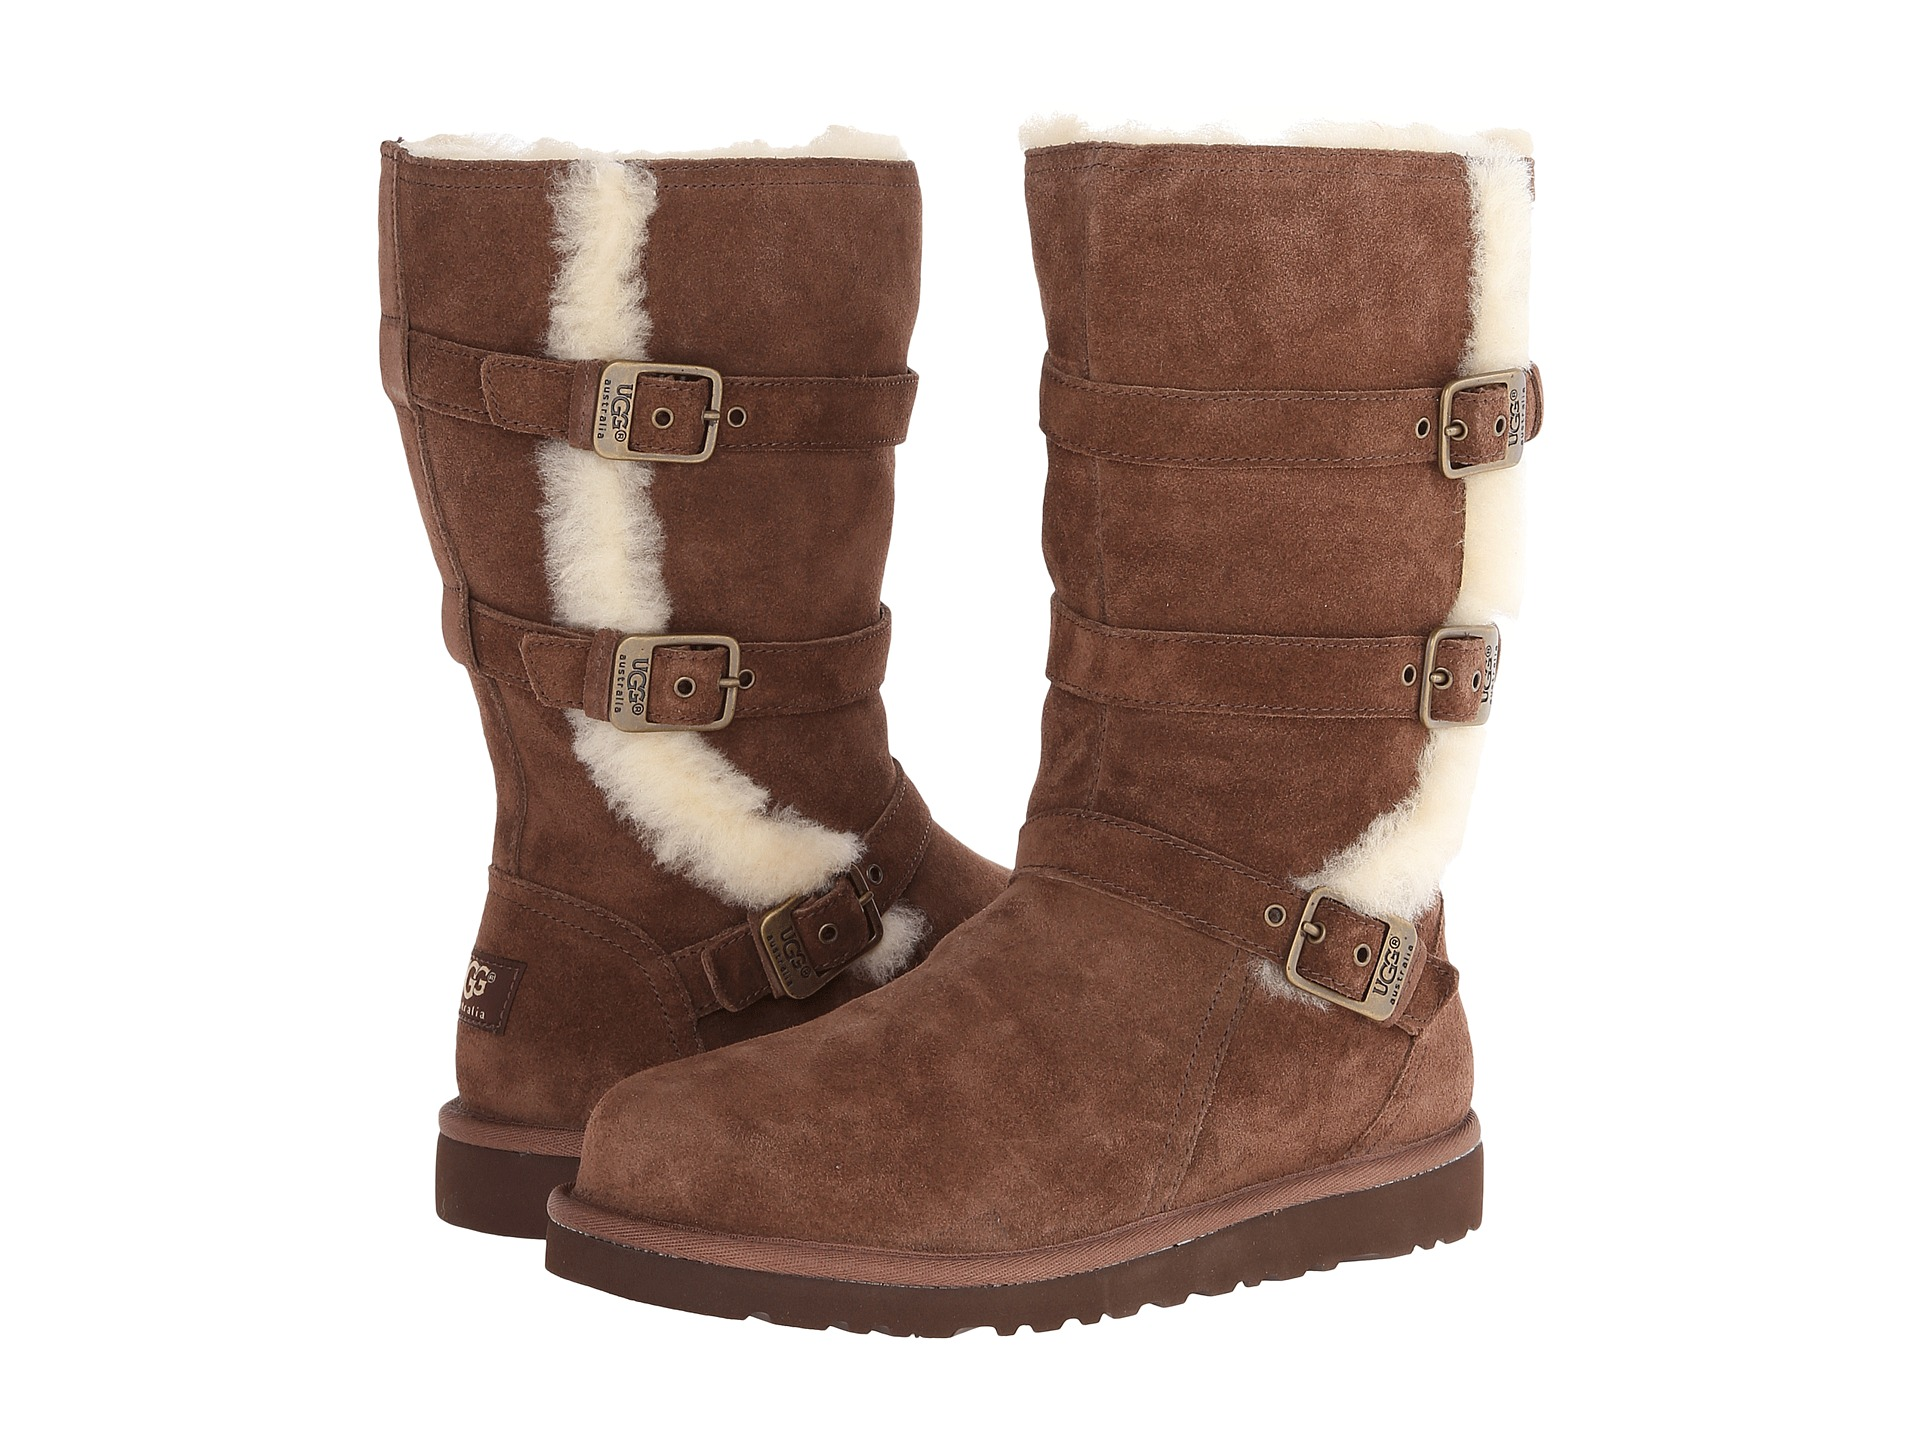 UGG KIDS' SHOES, BOOTS, BOOTIES, AND HATS. UGG boots for kids are tough enough for recess but cool enough to wear to a play date. Lace your son up for rough and tumble play in a pair of ankle-hUGGing boots with rubber soles that grip the ground for safety.